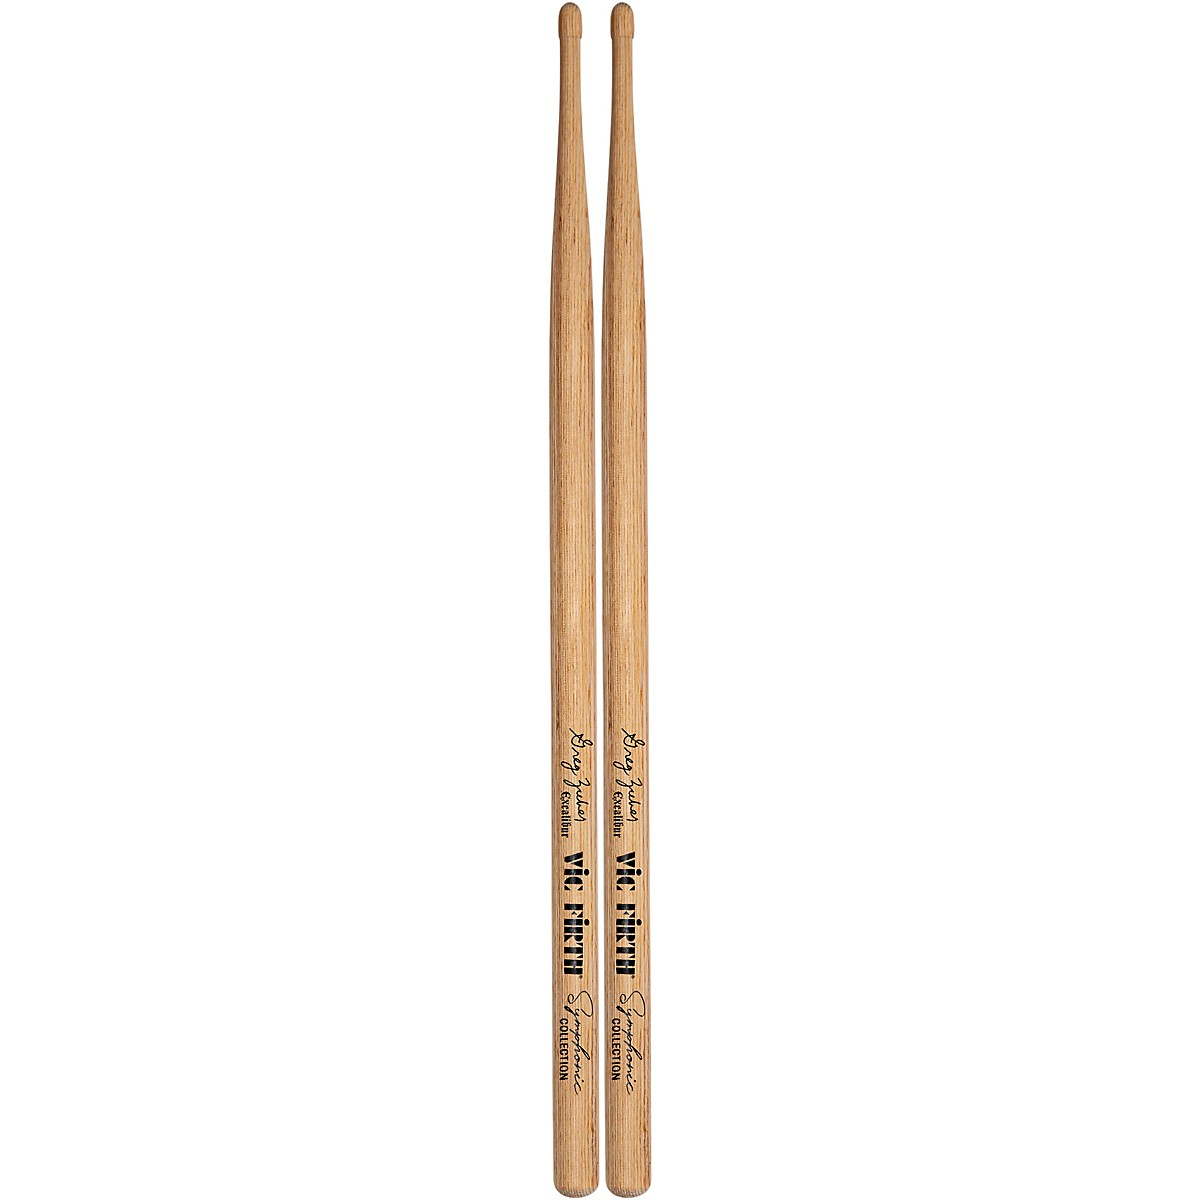 Vic Firth Symphonic Collection Greg Zuber Signature Excalibur Laminated Birch Drum Sticks